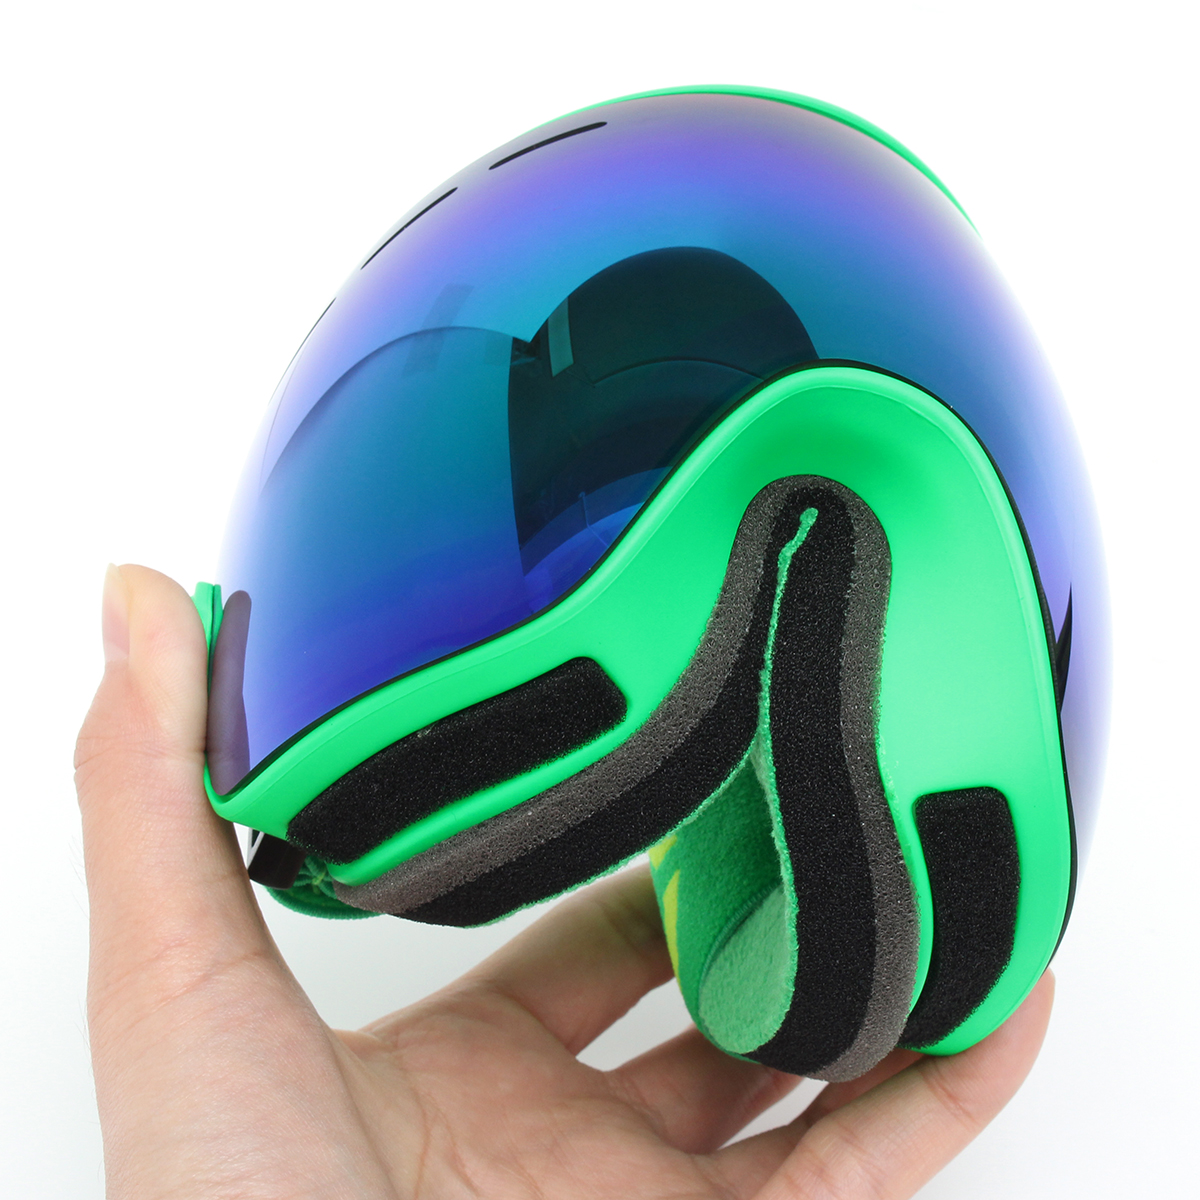 Snowboard Ski Goggles Two Layers Lens Motorcycle UV Protection Anti-fog Green